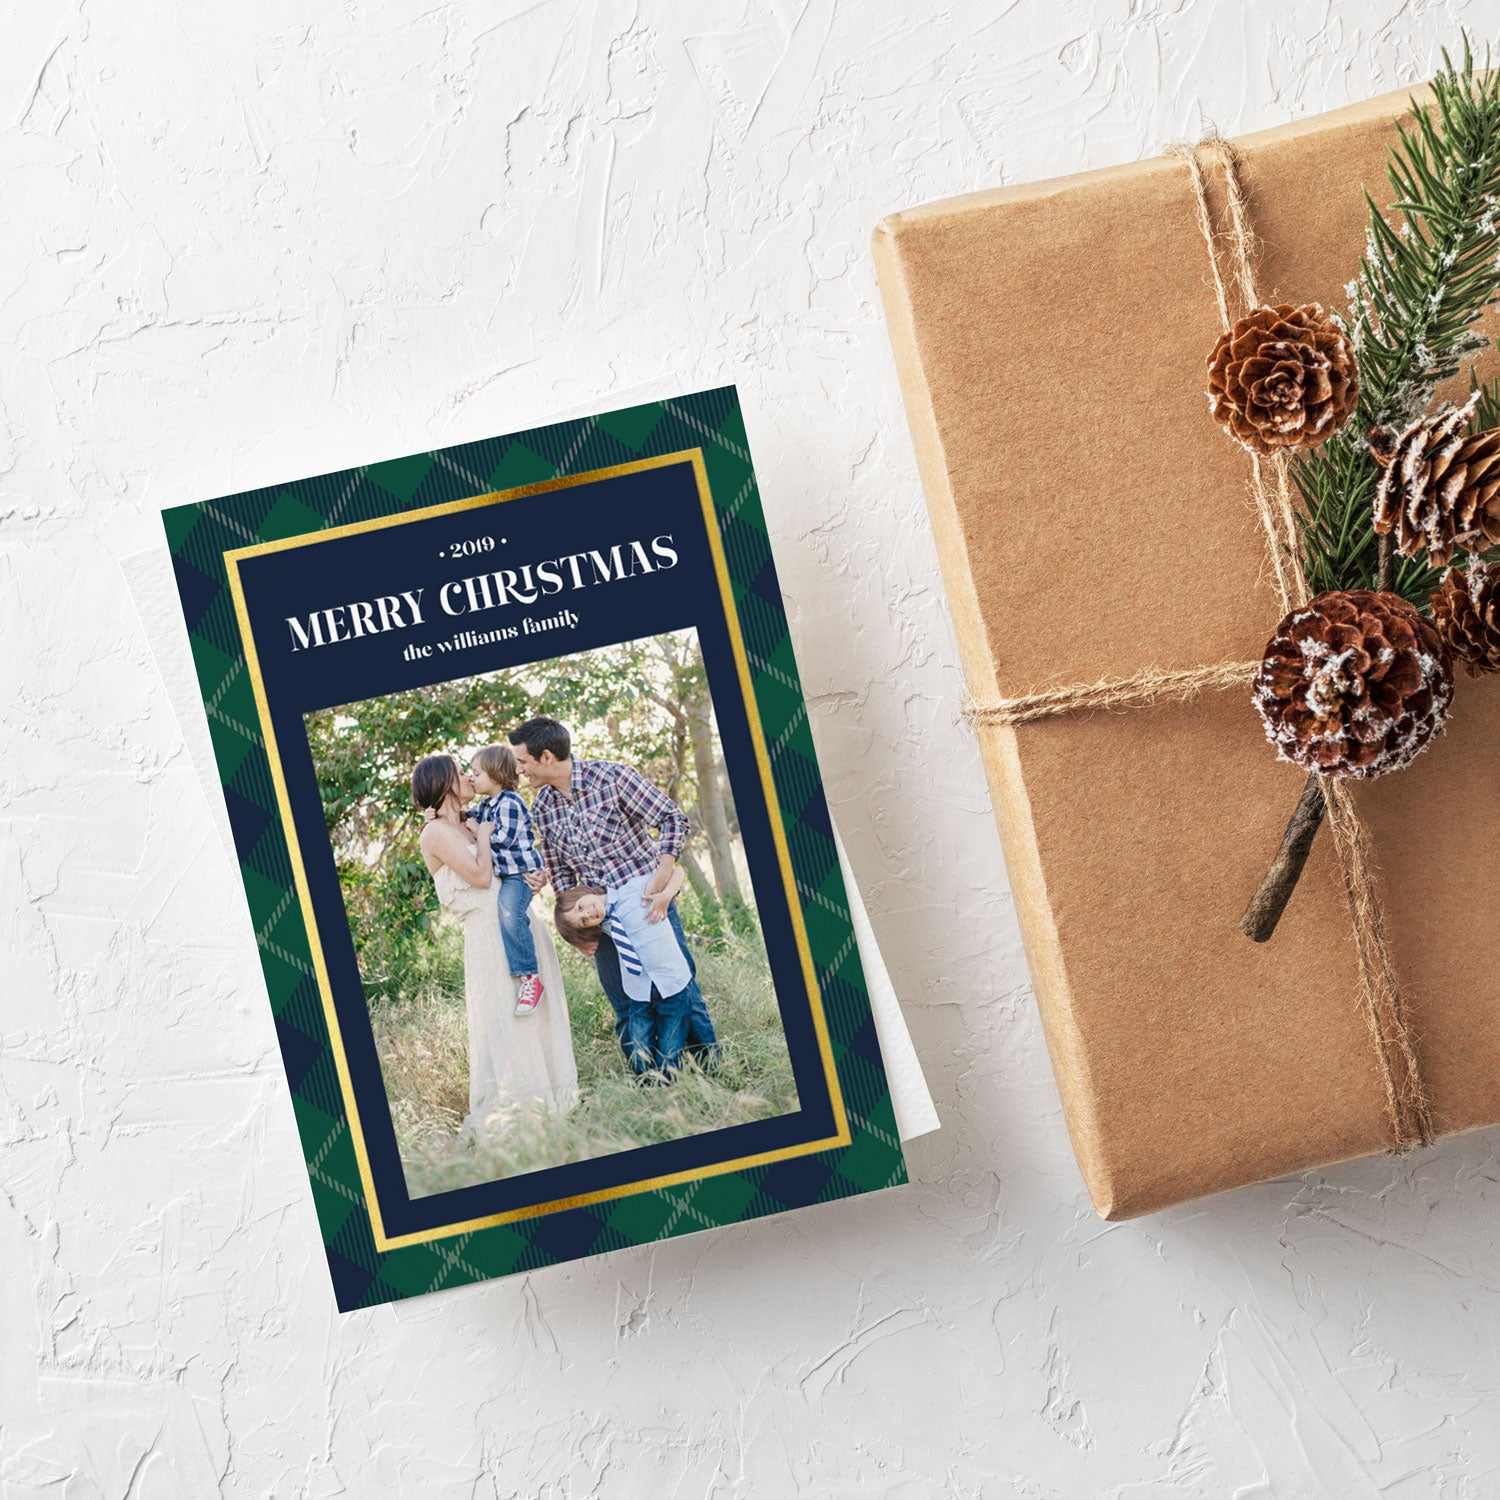 Country Club Plaid One Photo Christmas card by Erika Firm for Photo Affections